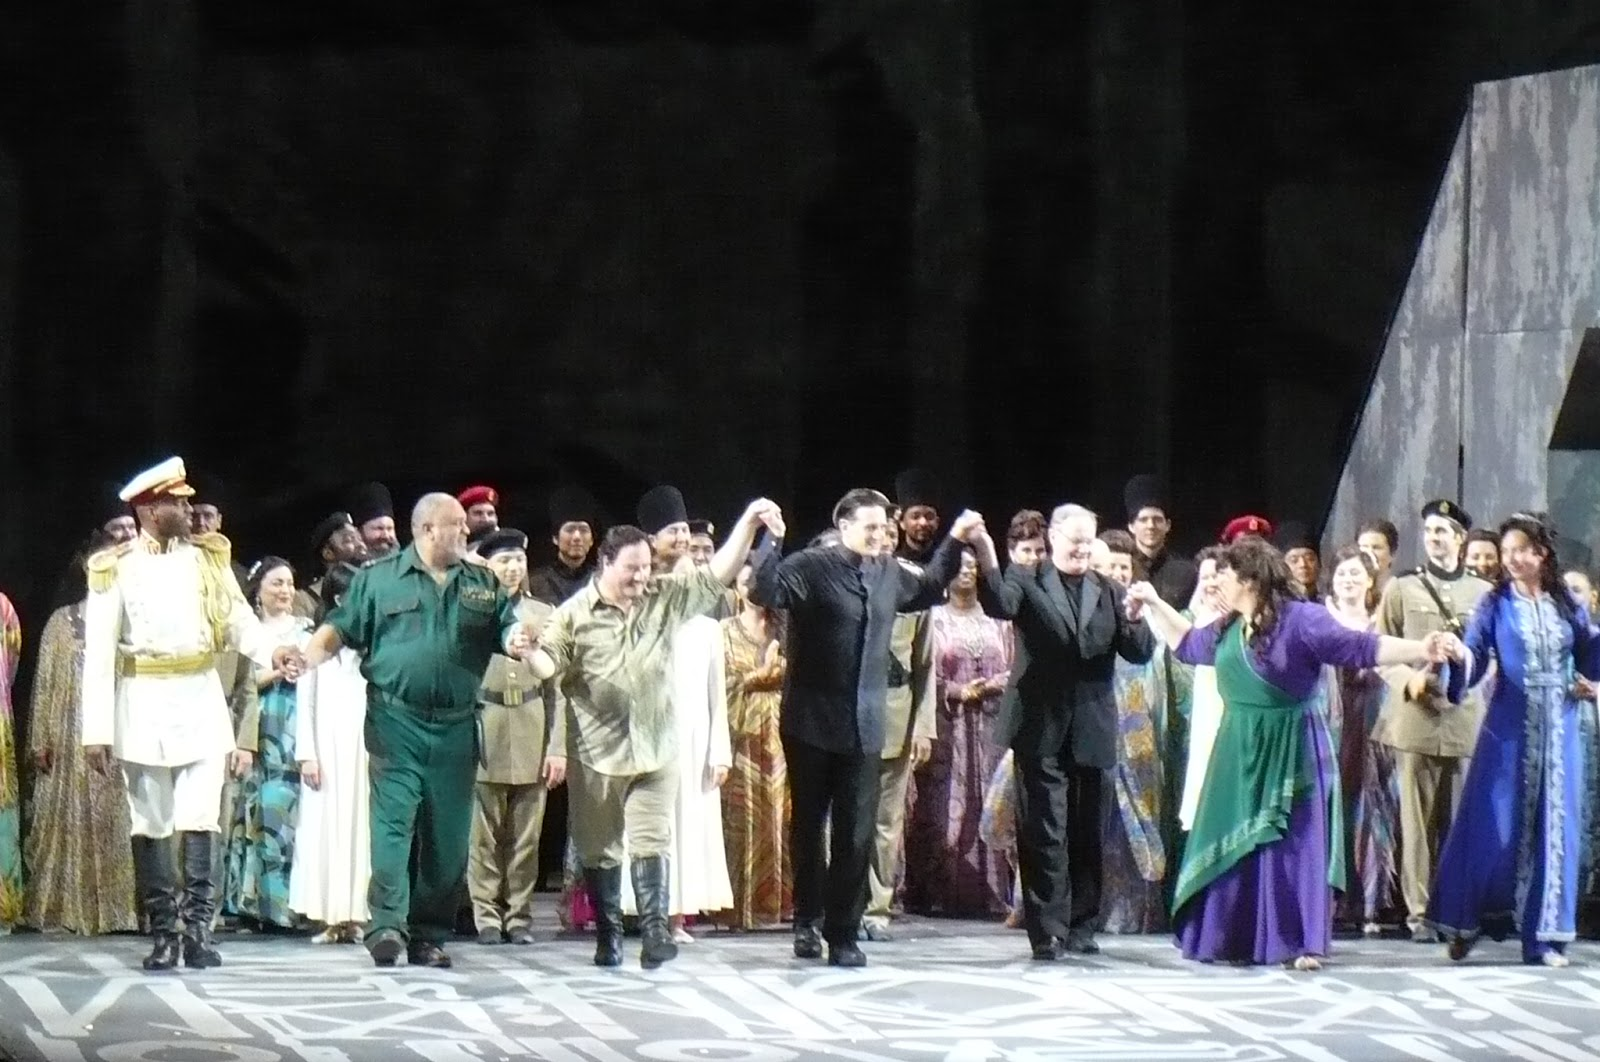 IN PERFORMANCE: (from left to right) bass SOLOMAN HOWARD as il Re d'Egitto, baritone GORDON HAWKINS as Amonasro, tenor CARL TANNER as Radamès, conductor EVAN ROGISTER, chorus master STEVEN GATHMAN, soprano LEAH CROCETTO as Aida, and mezzo-soprano MARINA PRUDENSKAYA as Amneris in Washington National Opera's production of Giuseppe Verdi's AIDA, 10 September 2017 [Photo by the author]